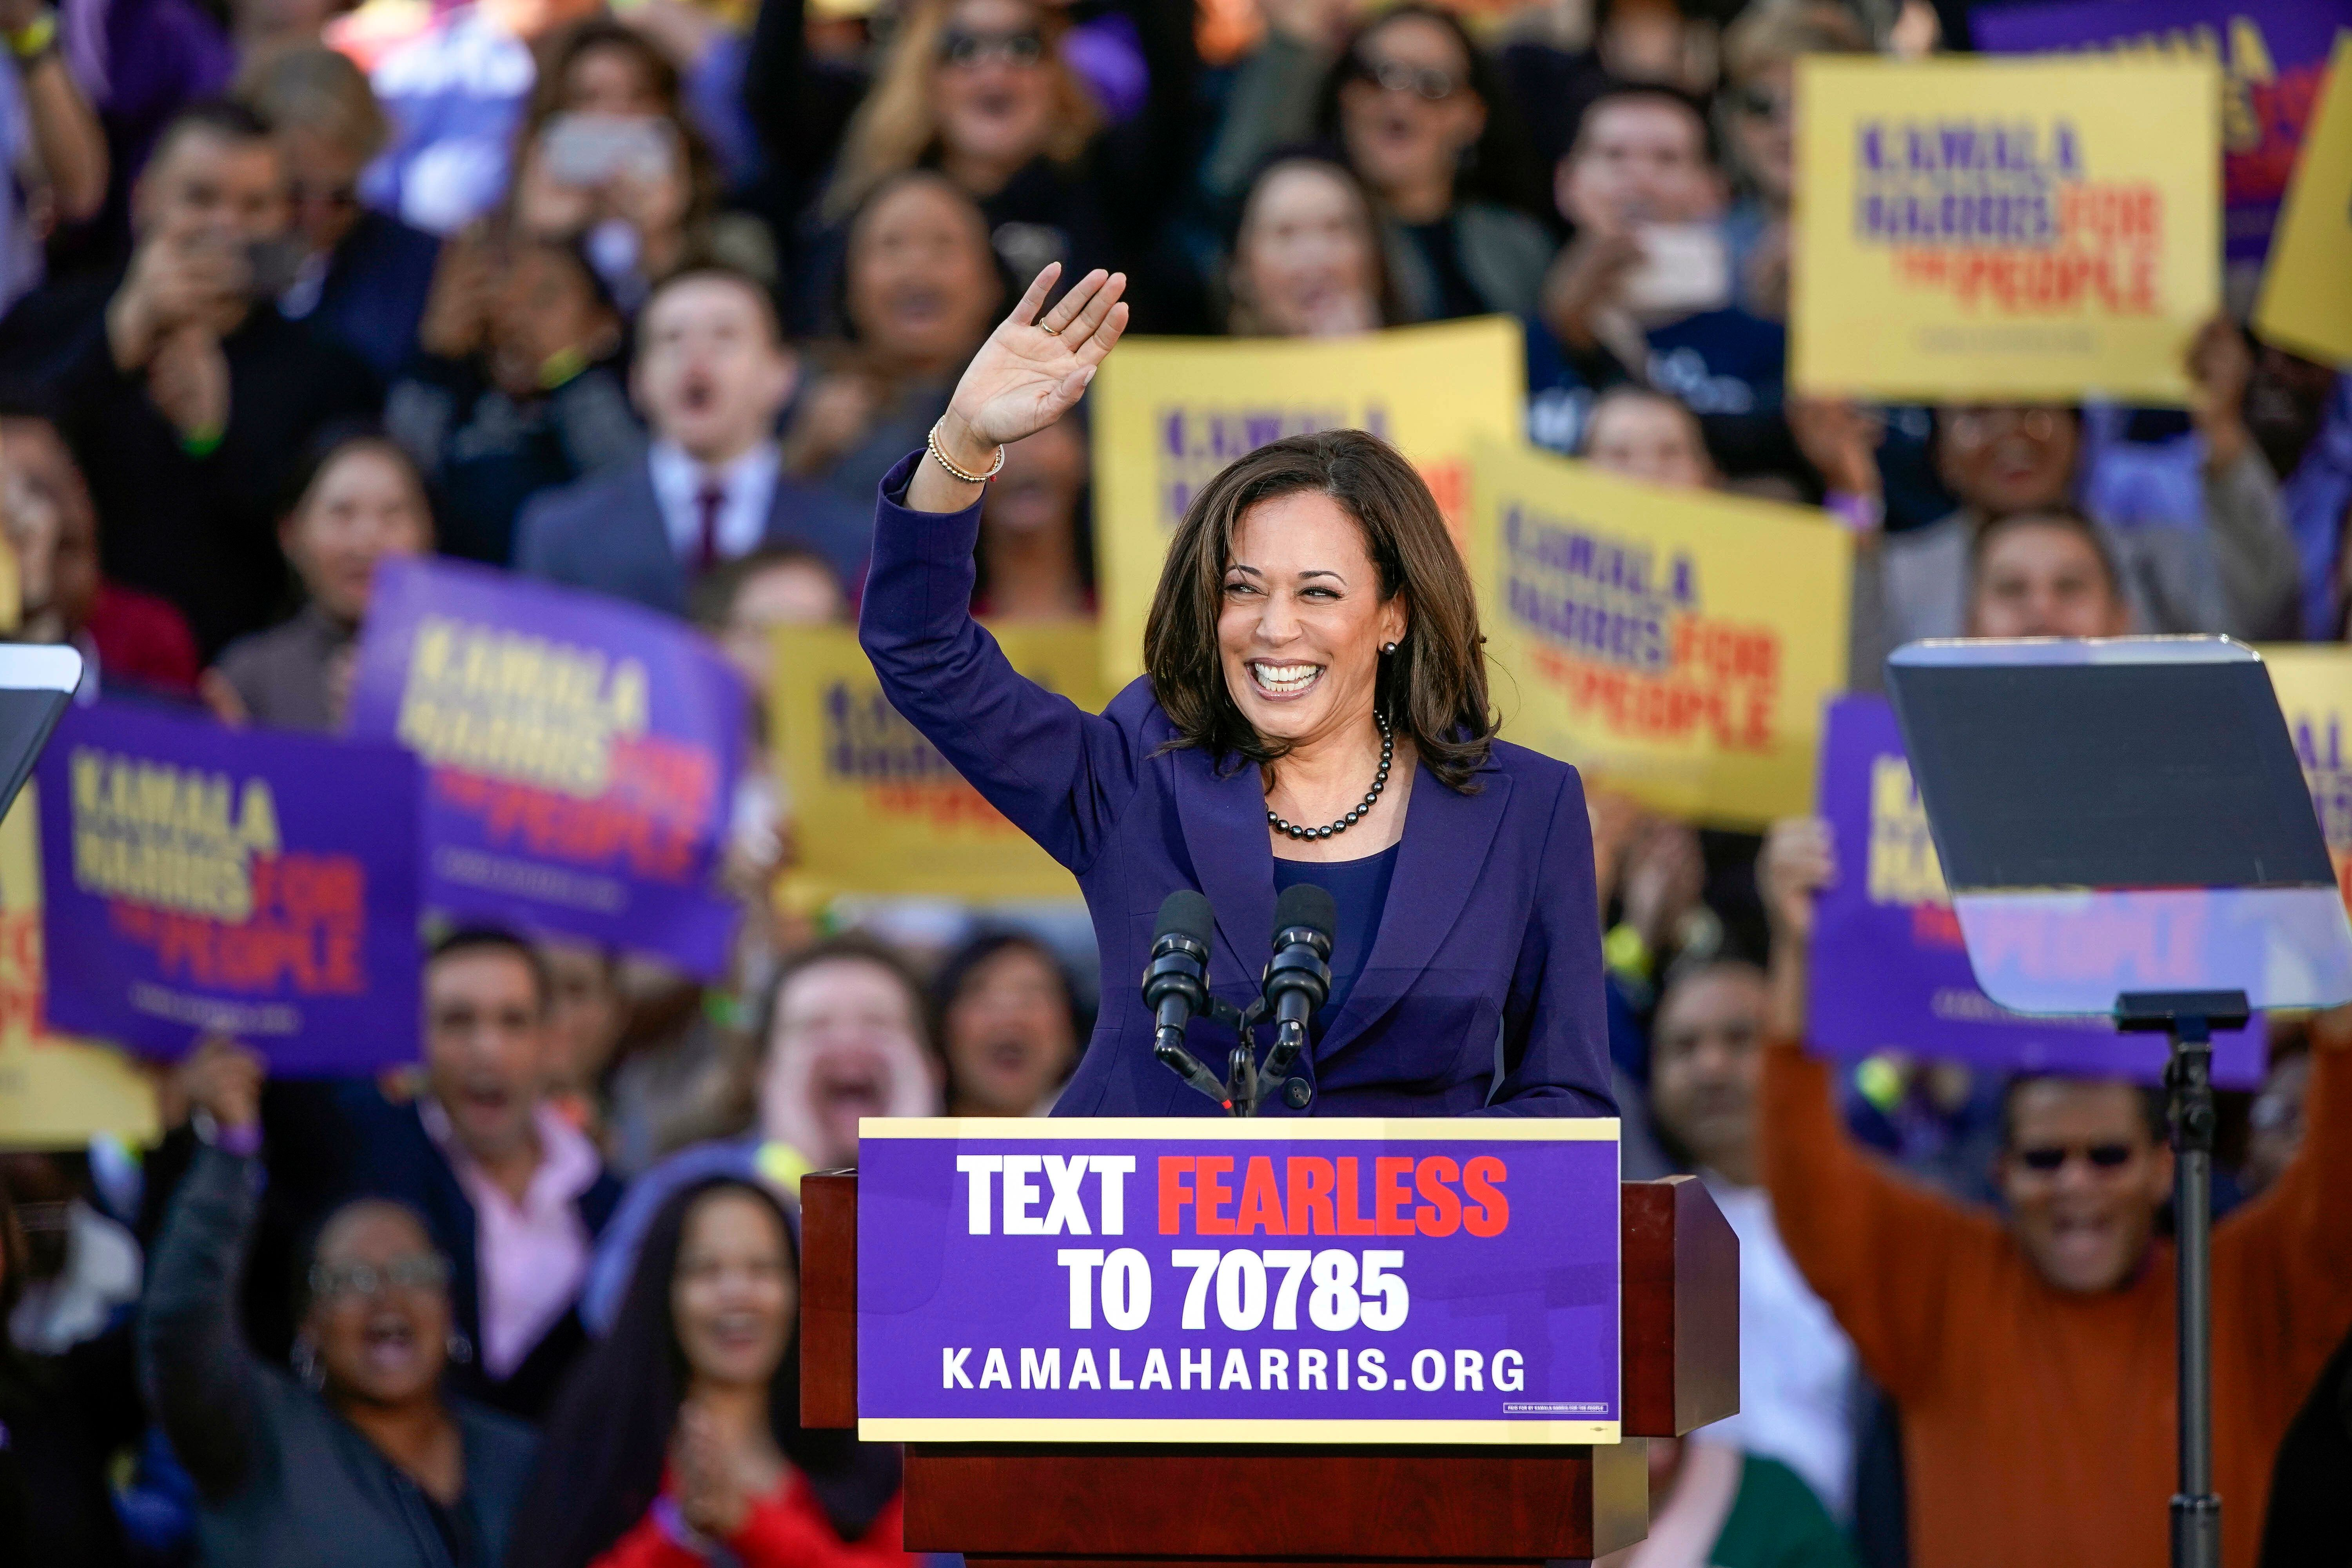 Kamala Harris kicks off campaign with Oakland rally, defends her record as a prosecutor